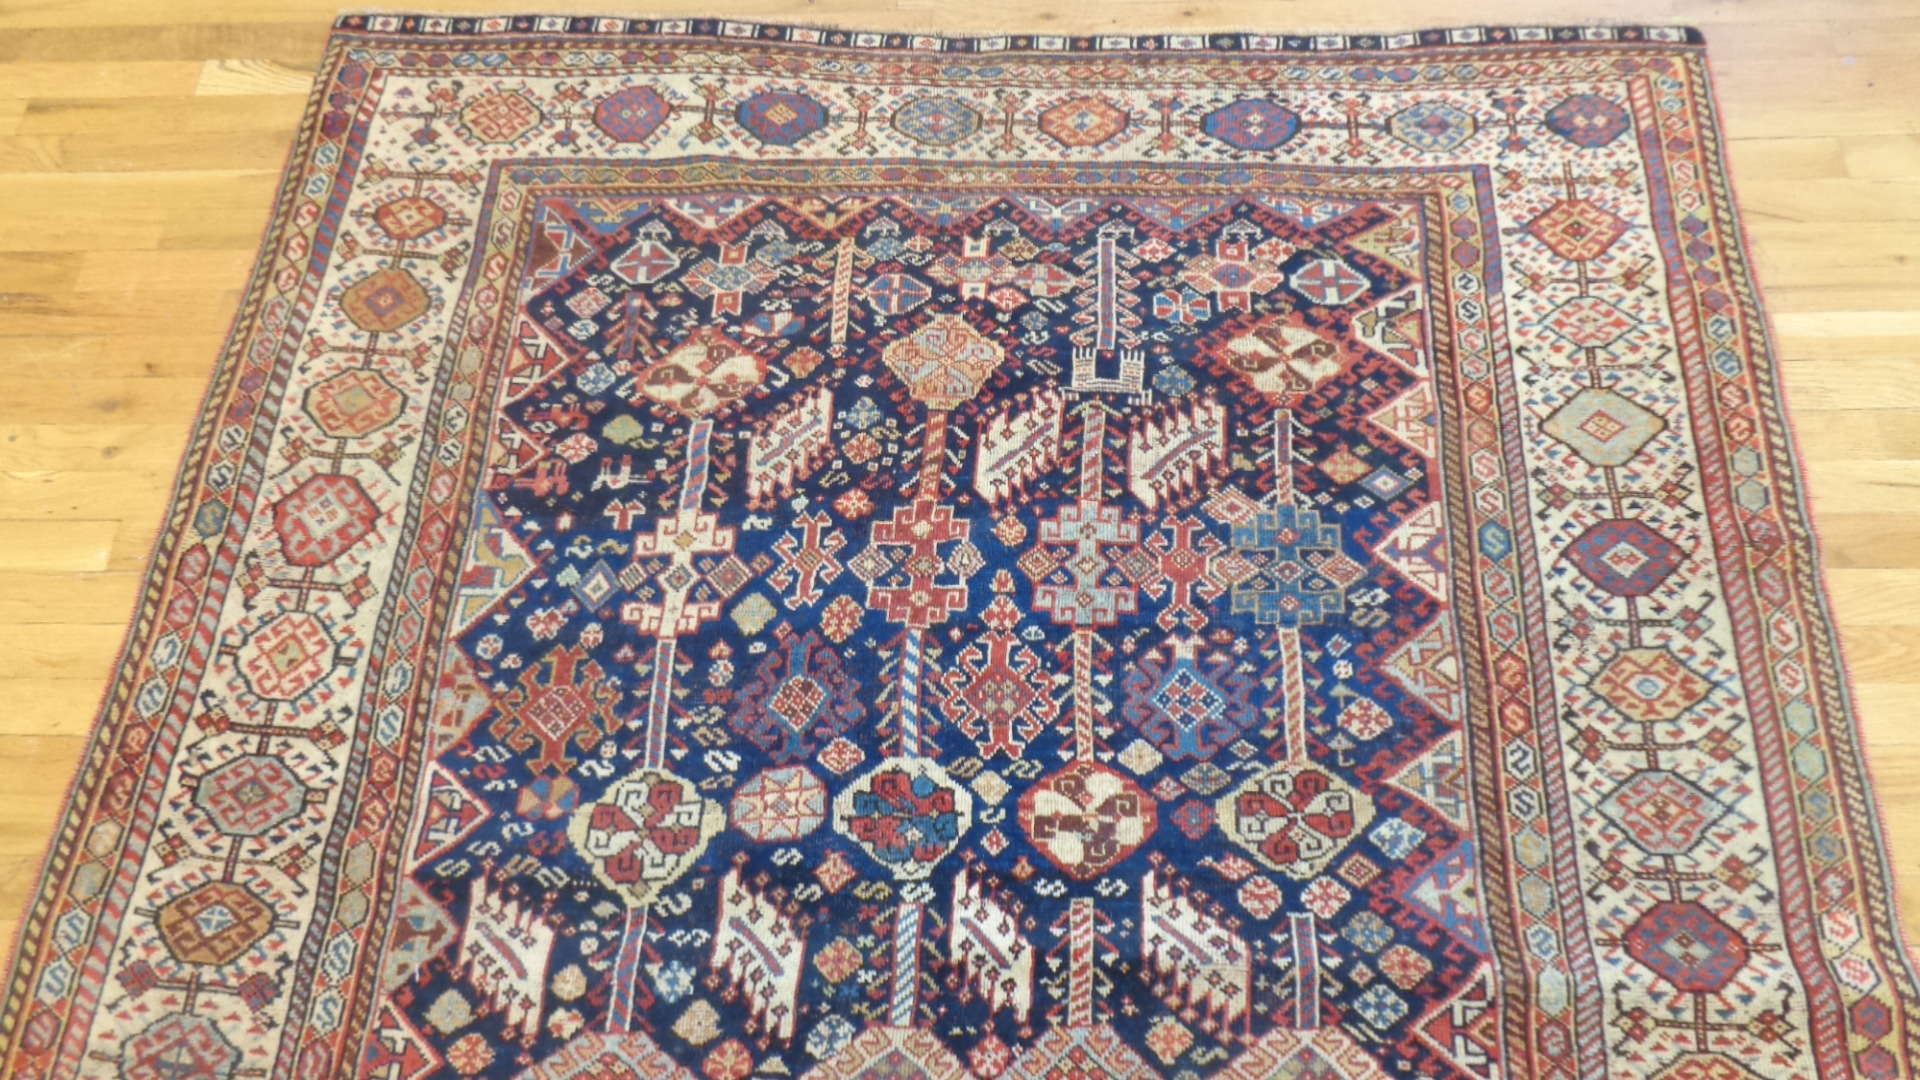 24748 antique persian qashqai rug 5.5x7.7-1